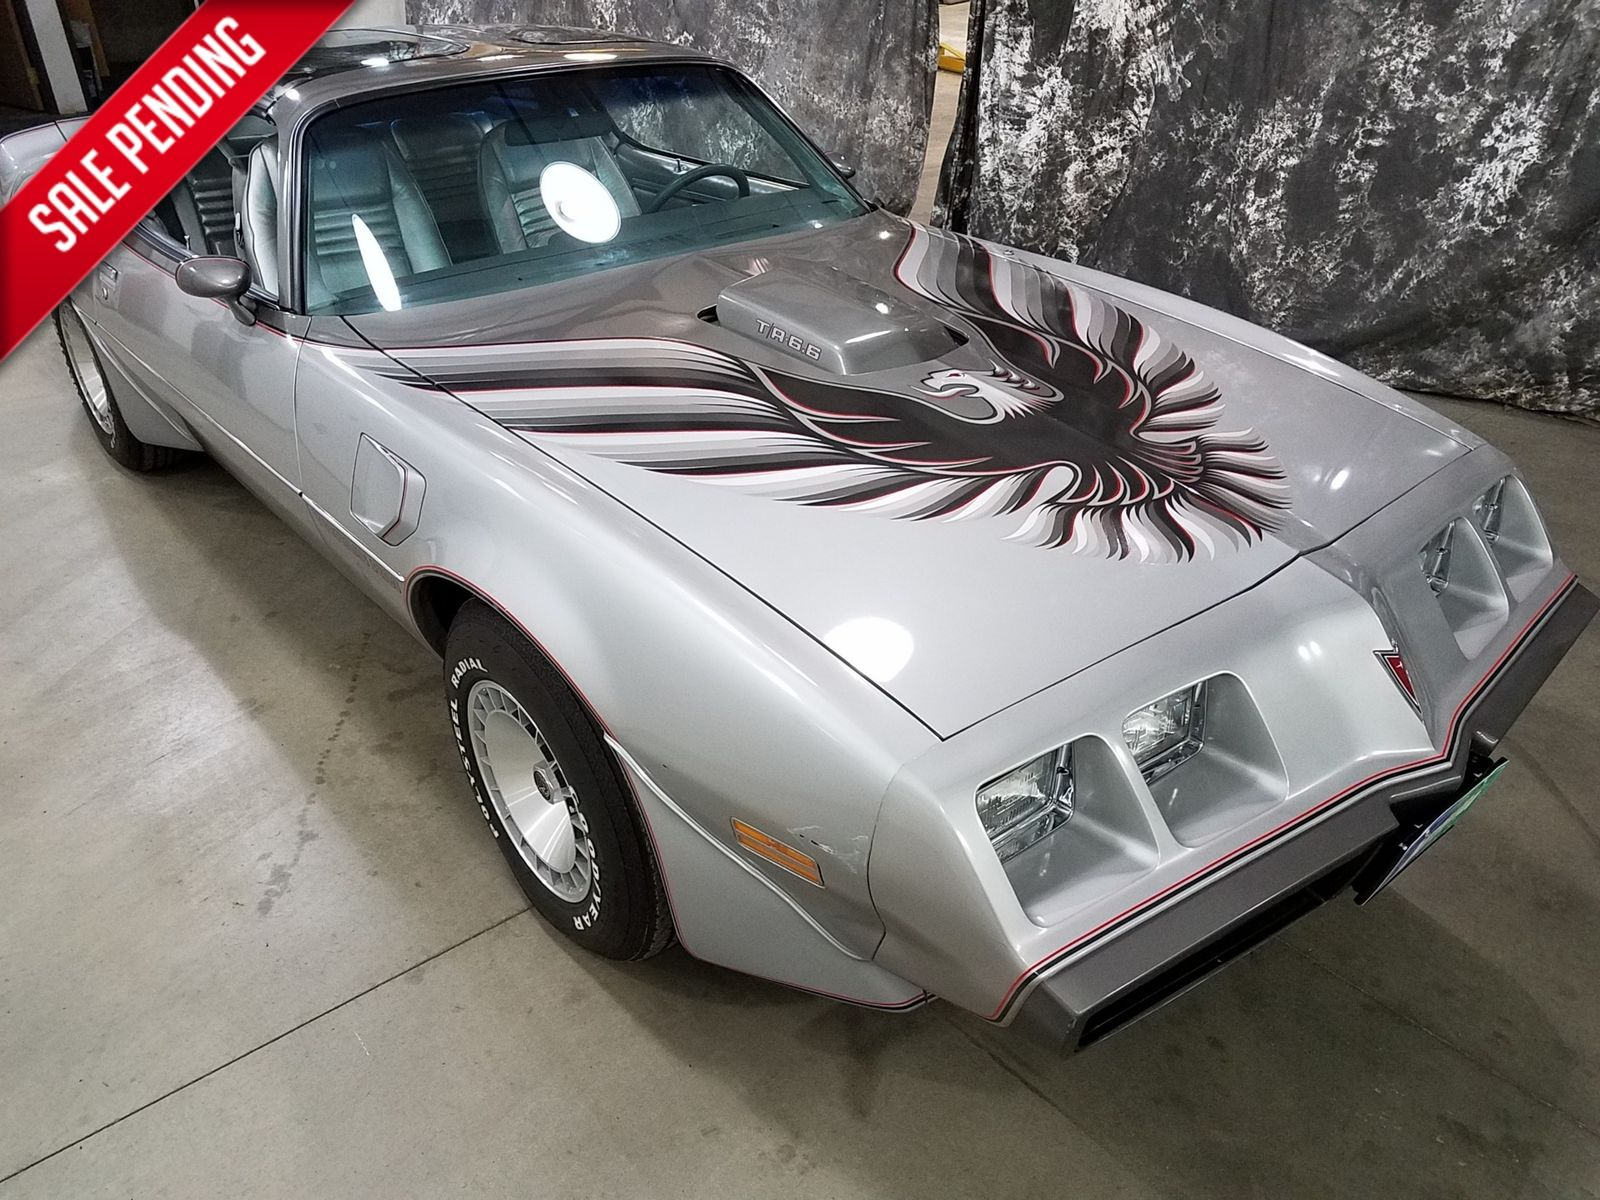 1979 Trans Am Picture 1979 Pontiac Trans Am Ws6 10th Anv City Nd Autorama Auto Sales